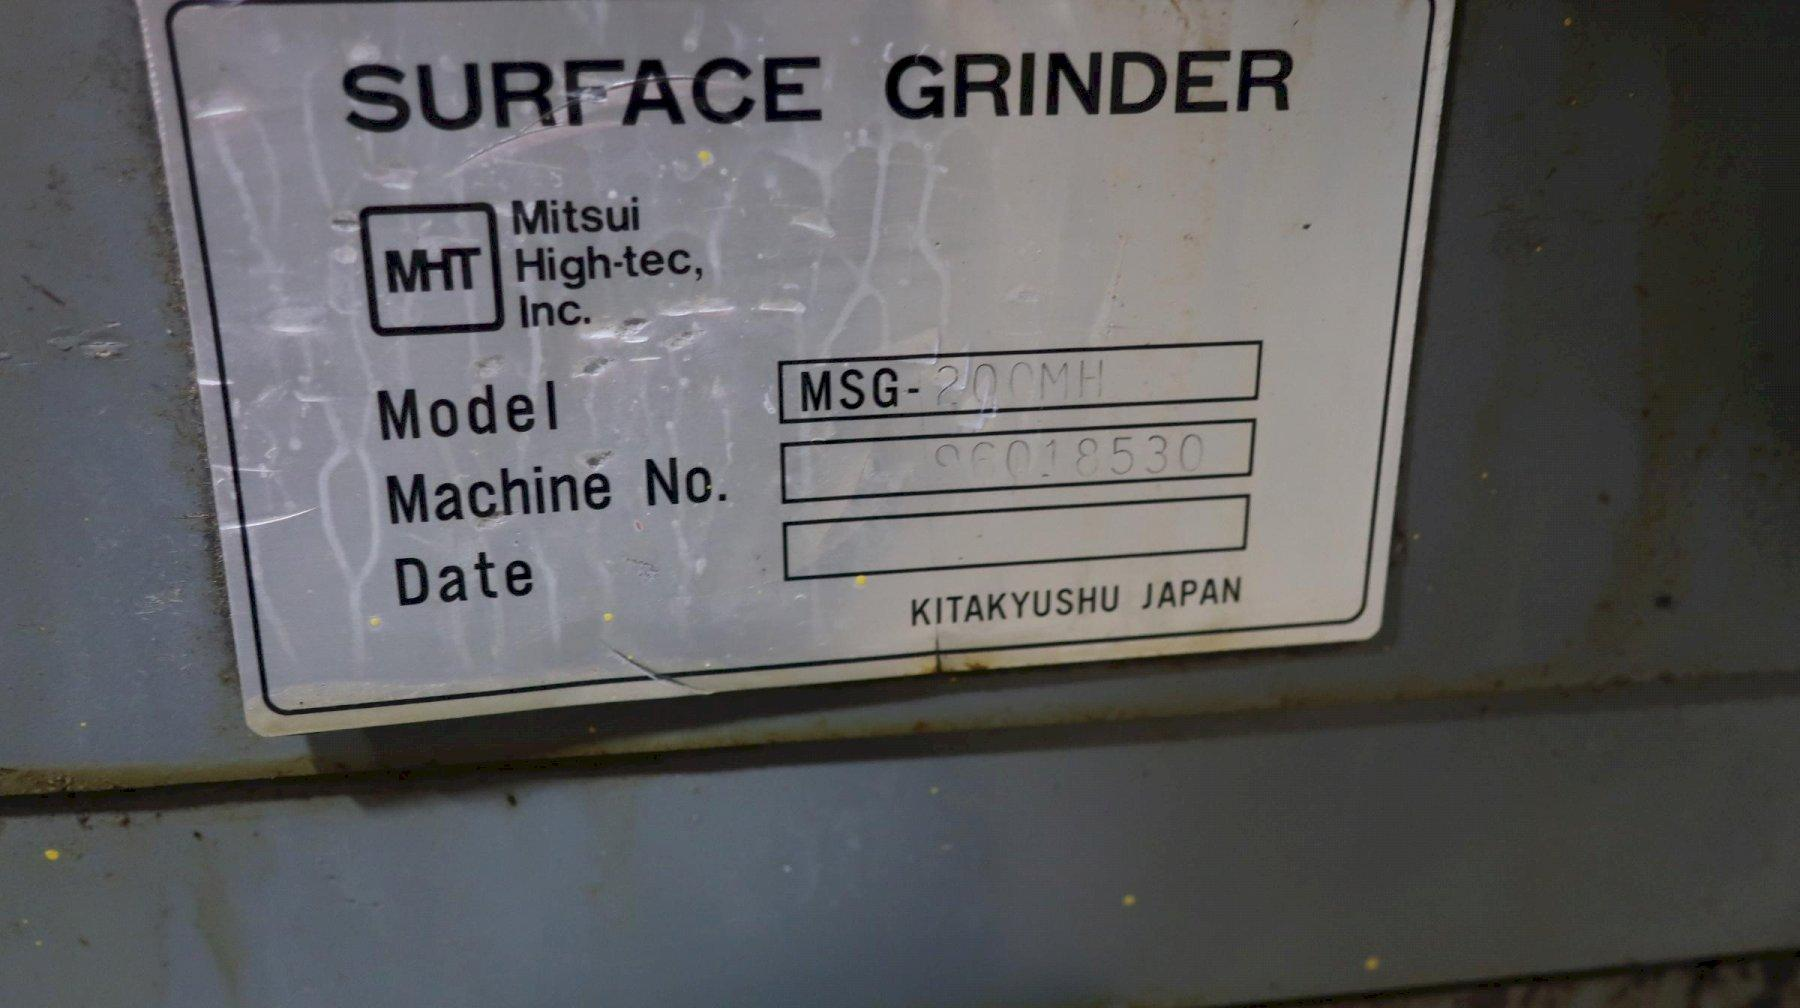 """Mitsui High-tec 200MH Hand Feed Surface Grinder, 6""""x12"""" Chuck, New 1996"""